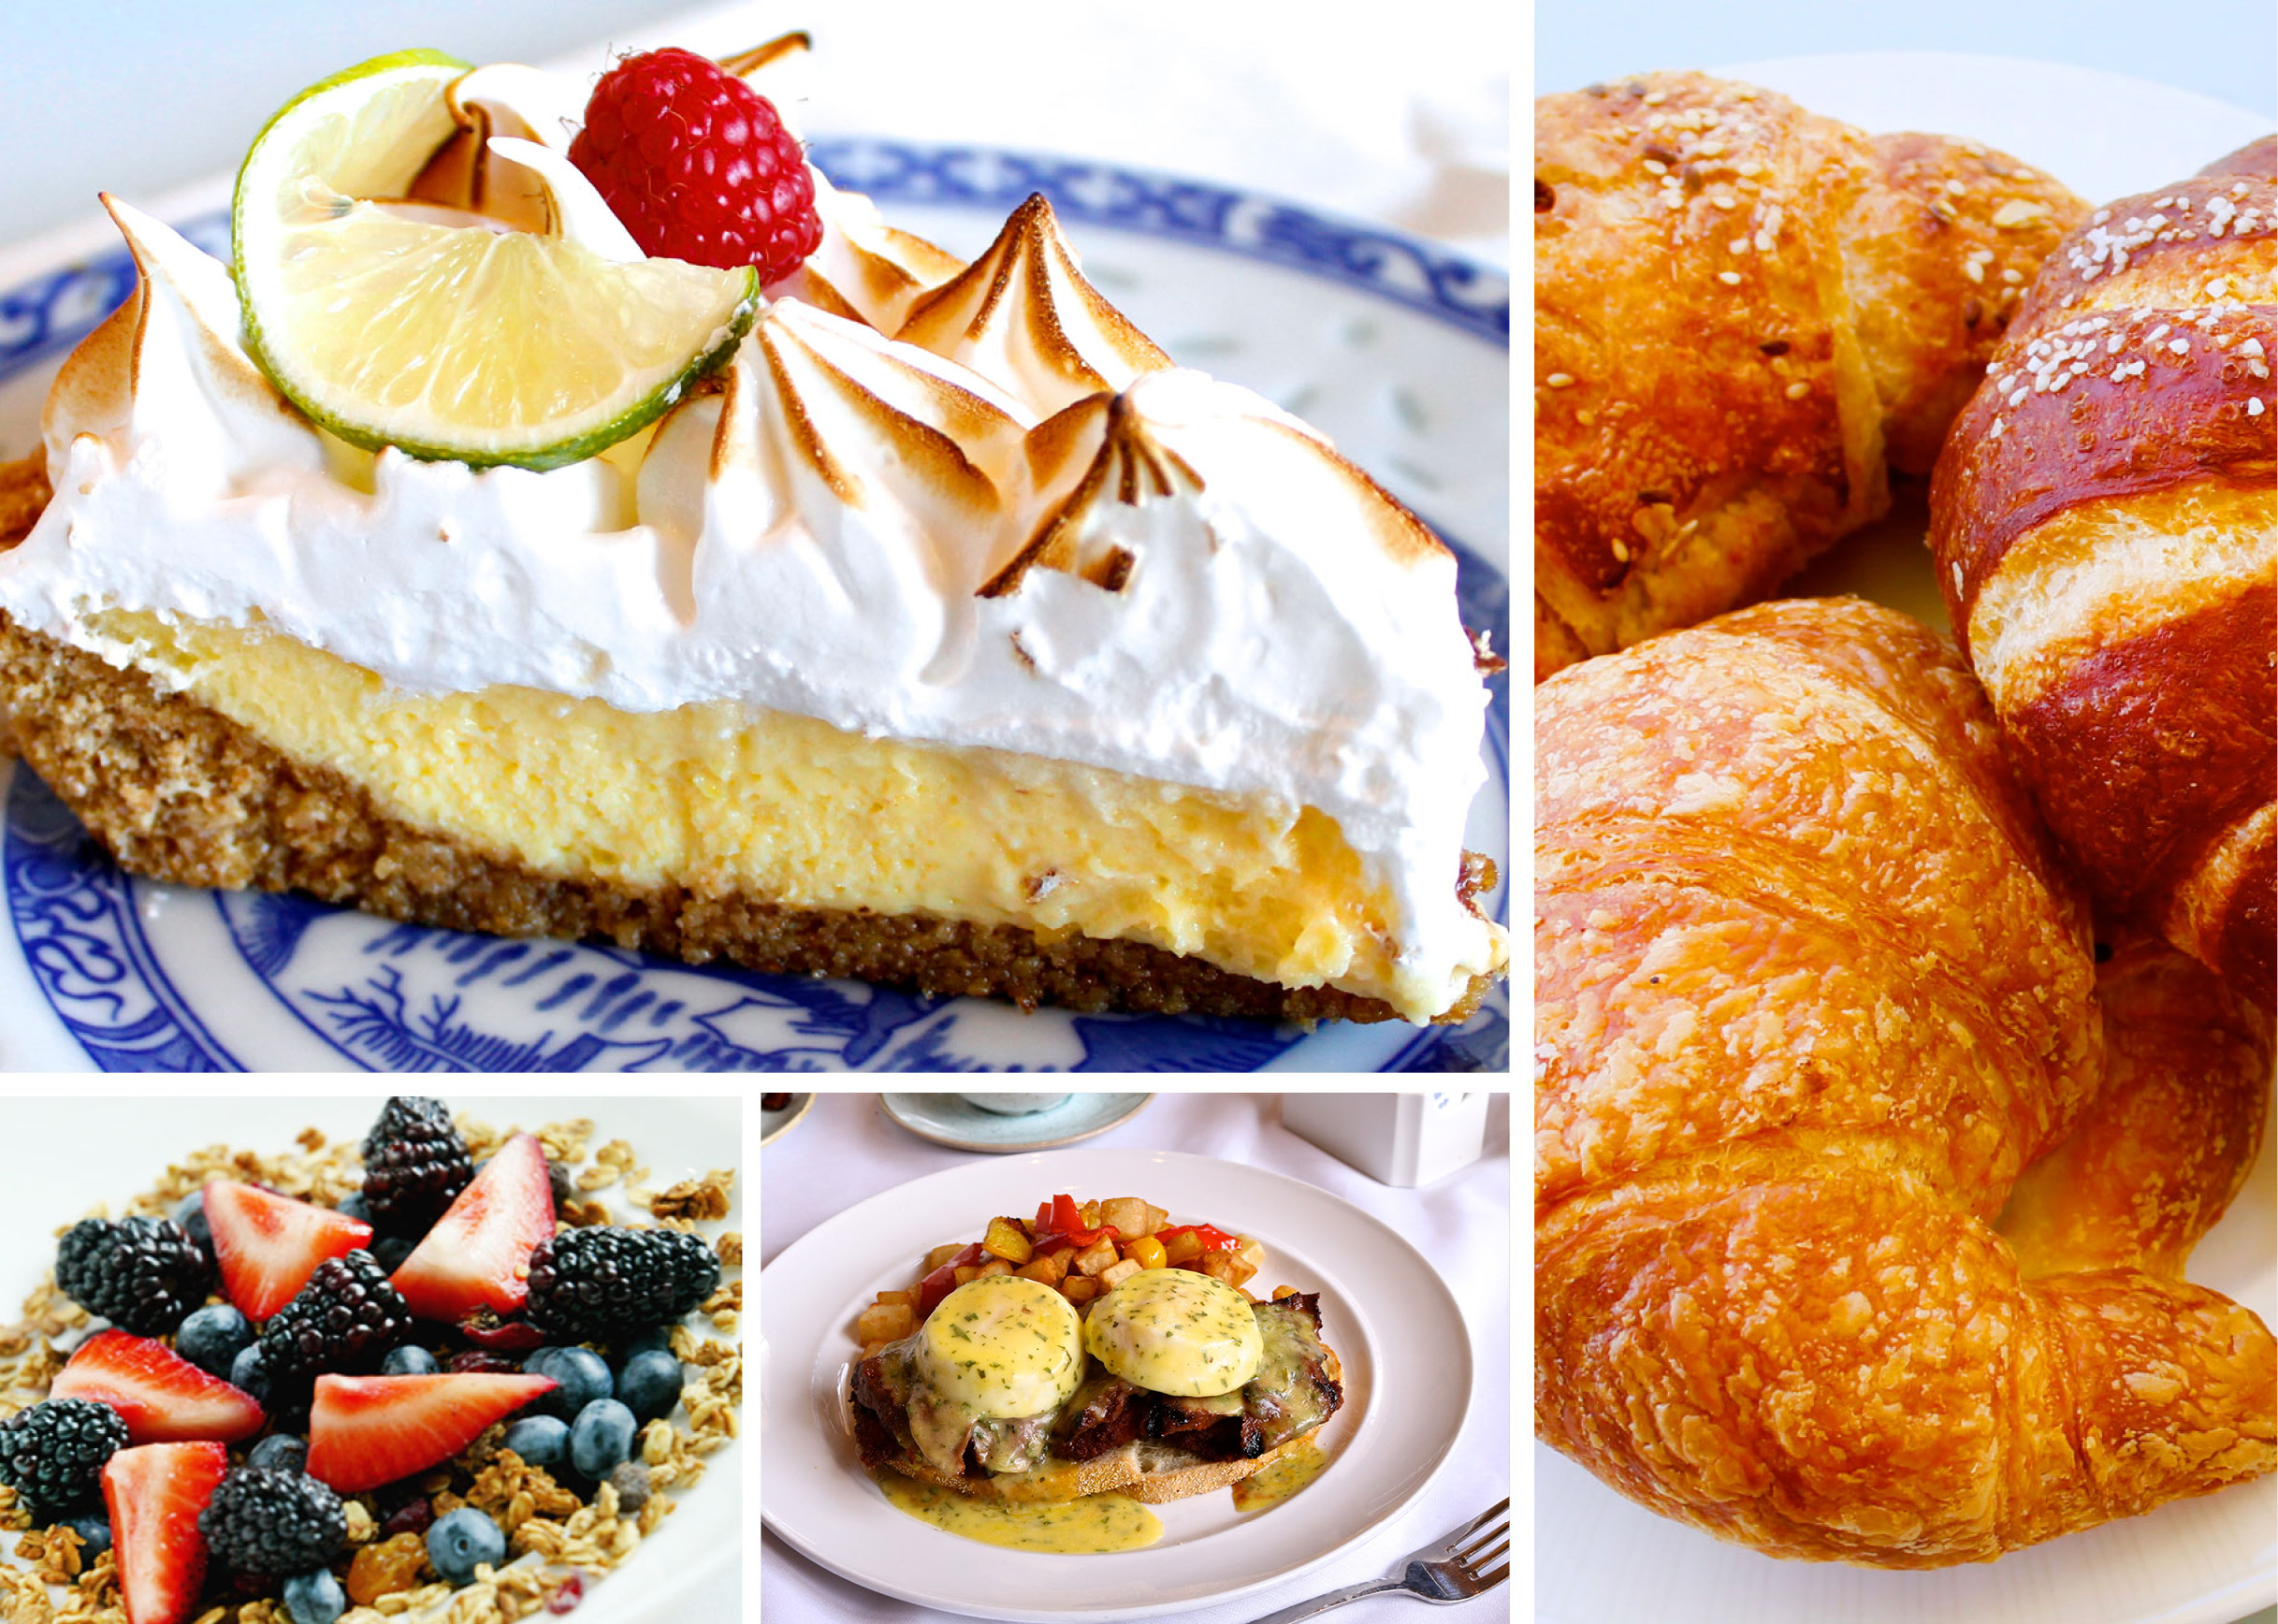 collage of pastries and food dishes